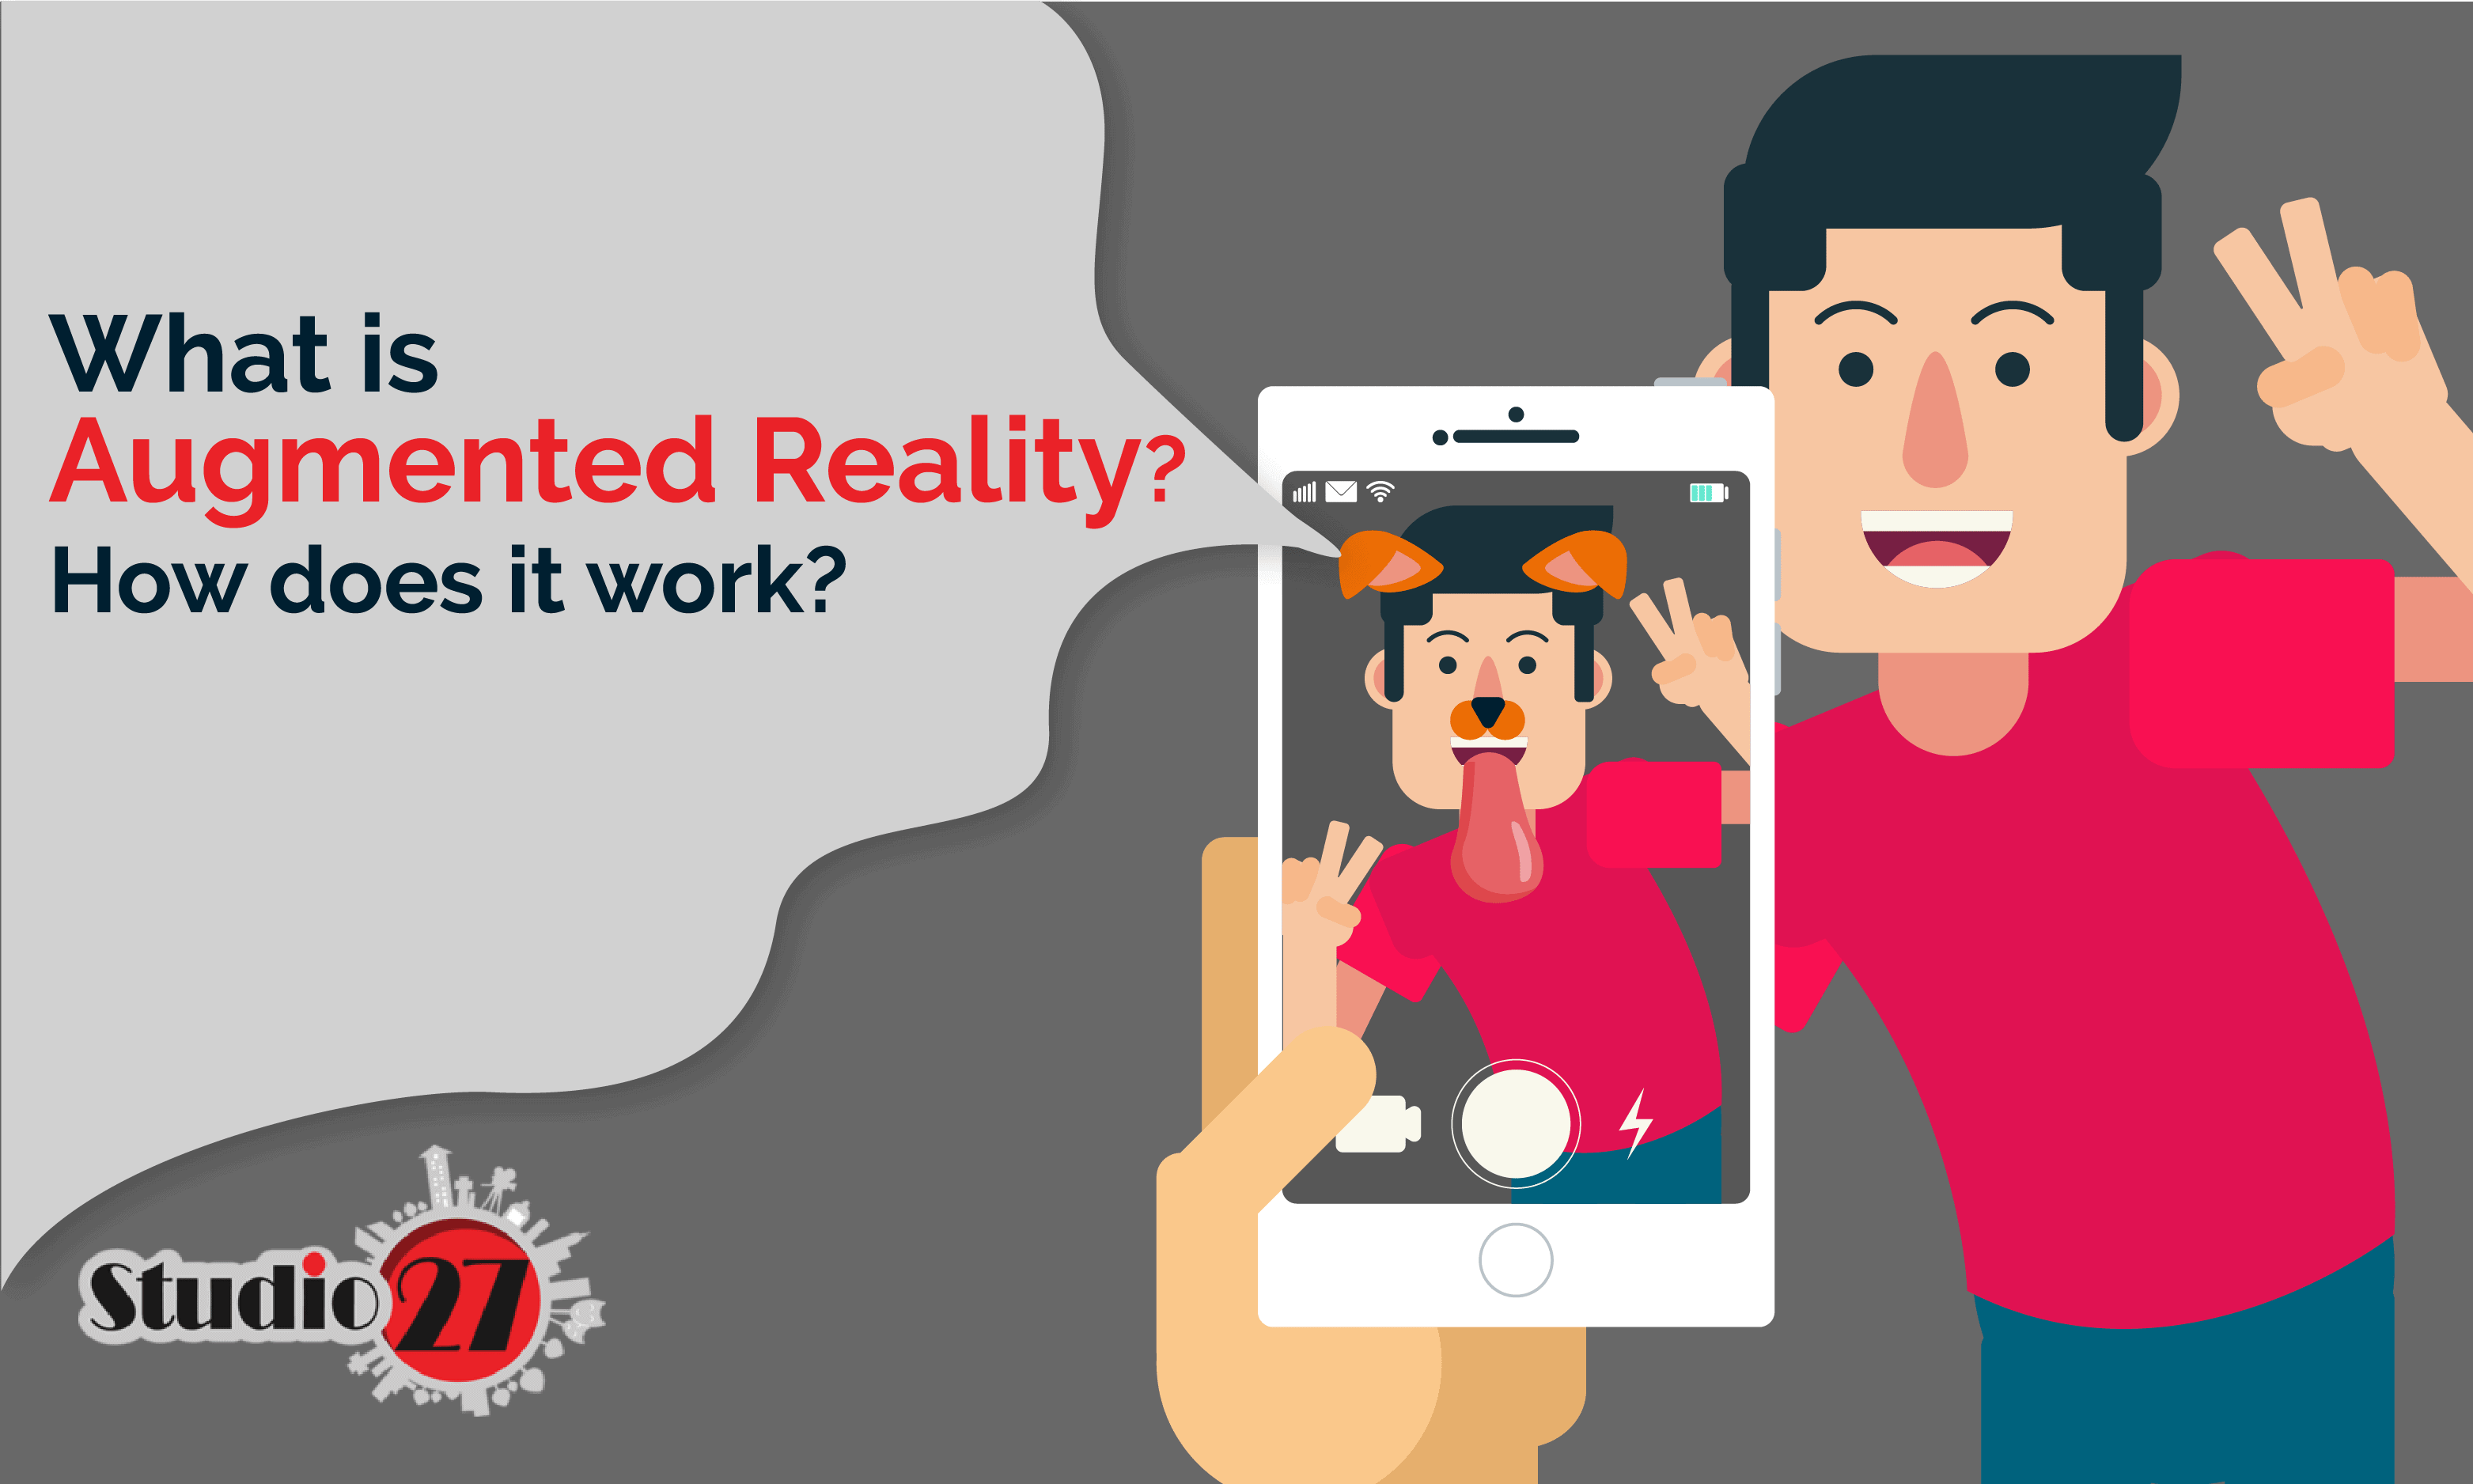 What is Augmented Reality (AR) and How does it work?